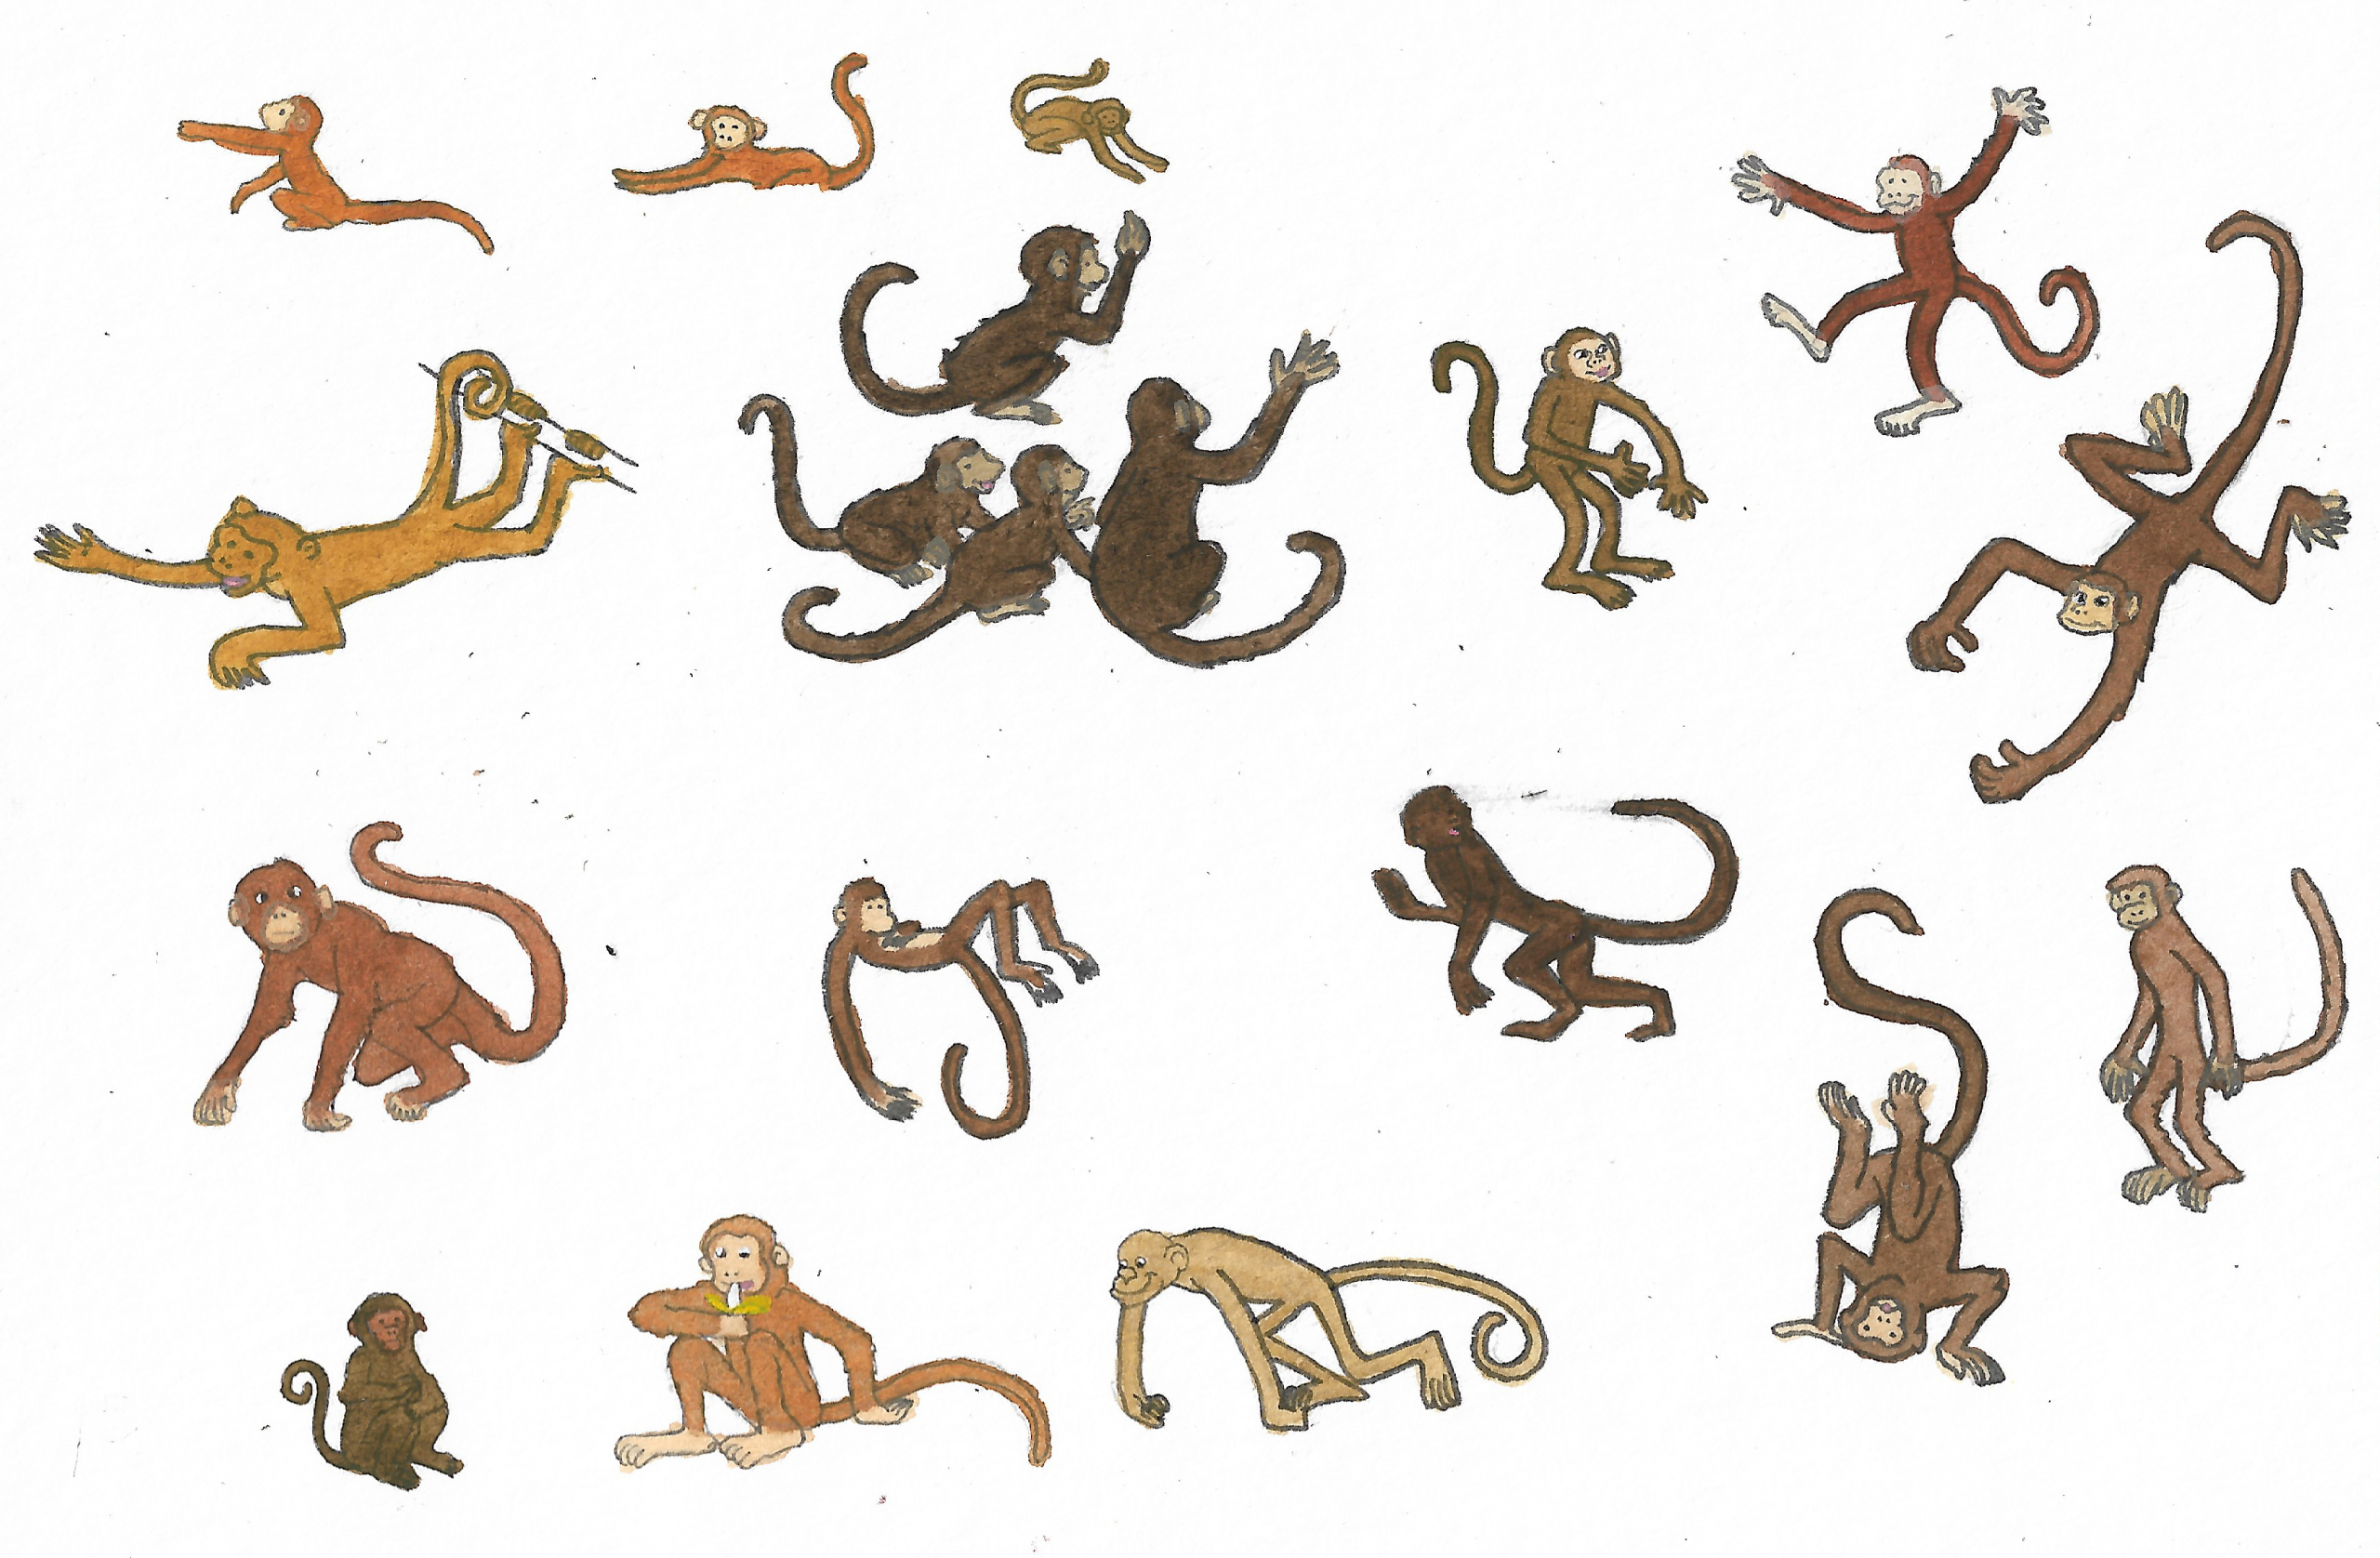 monkeys_by_brazilianferalcat_ddhctko